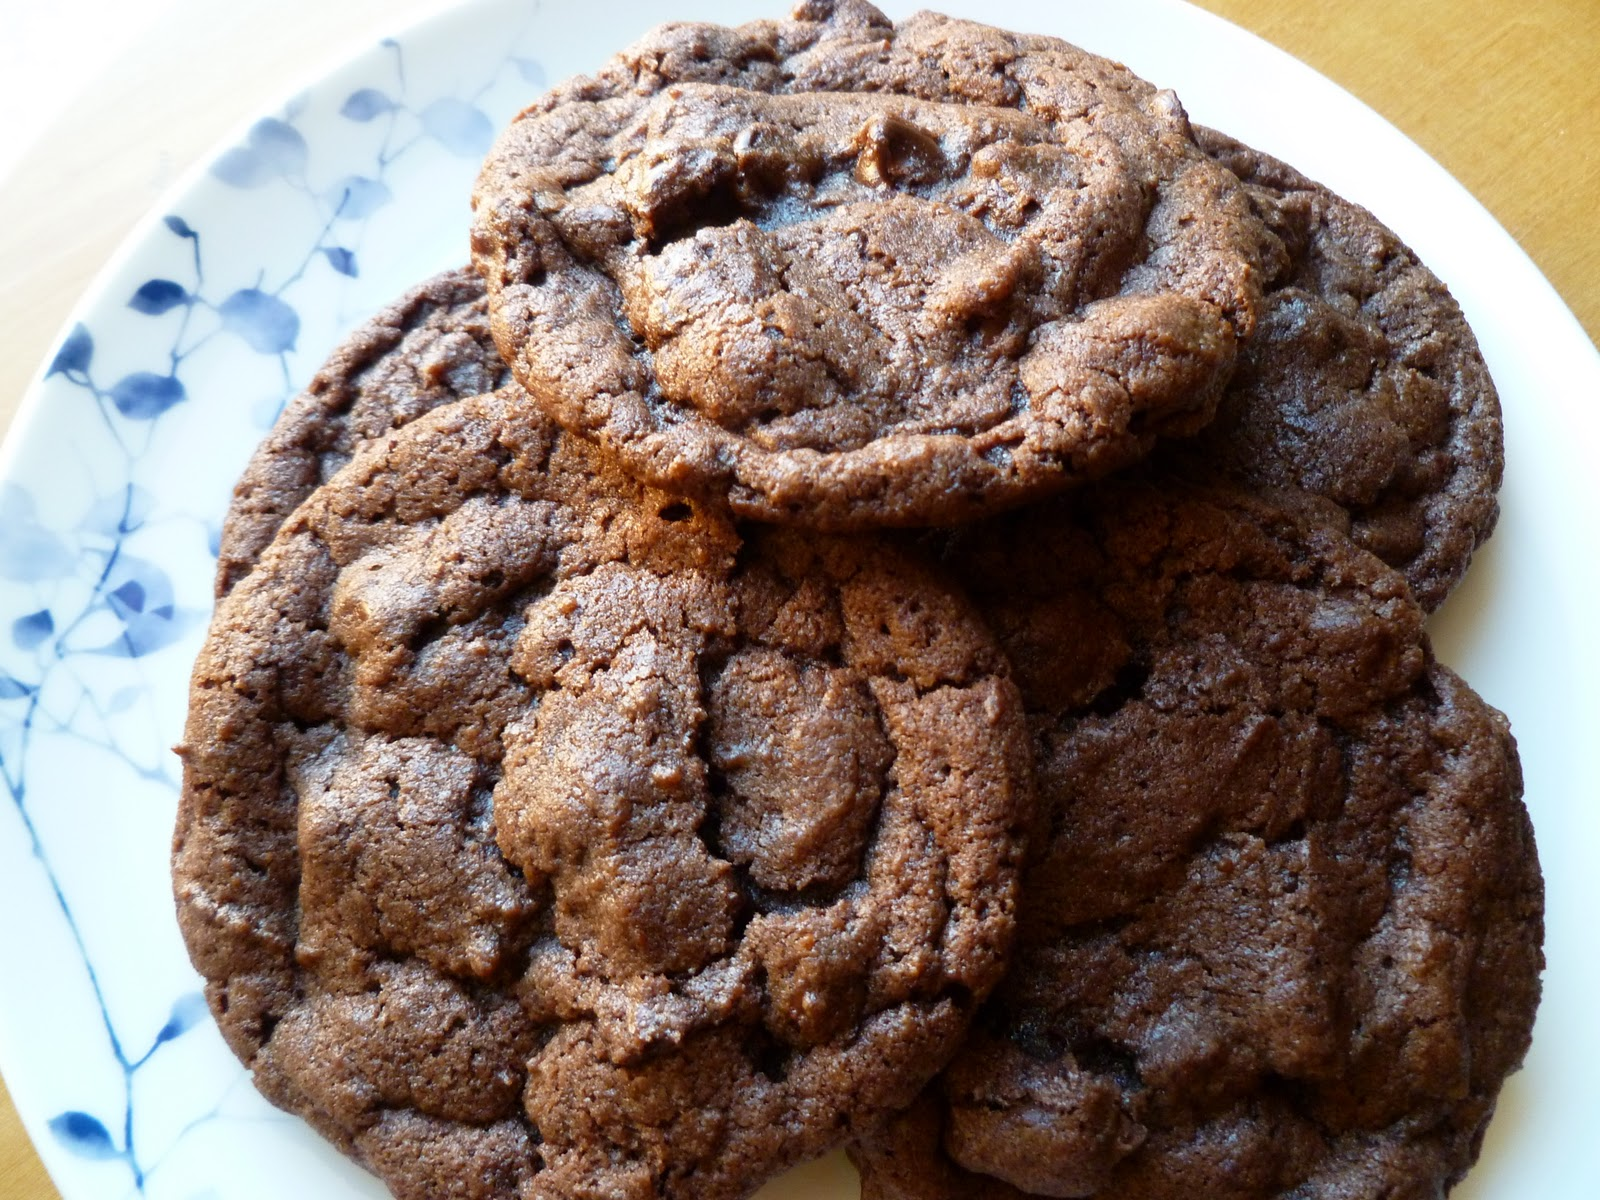 The Pastry Chef's Baking: Chocolate Nutella Cookies